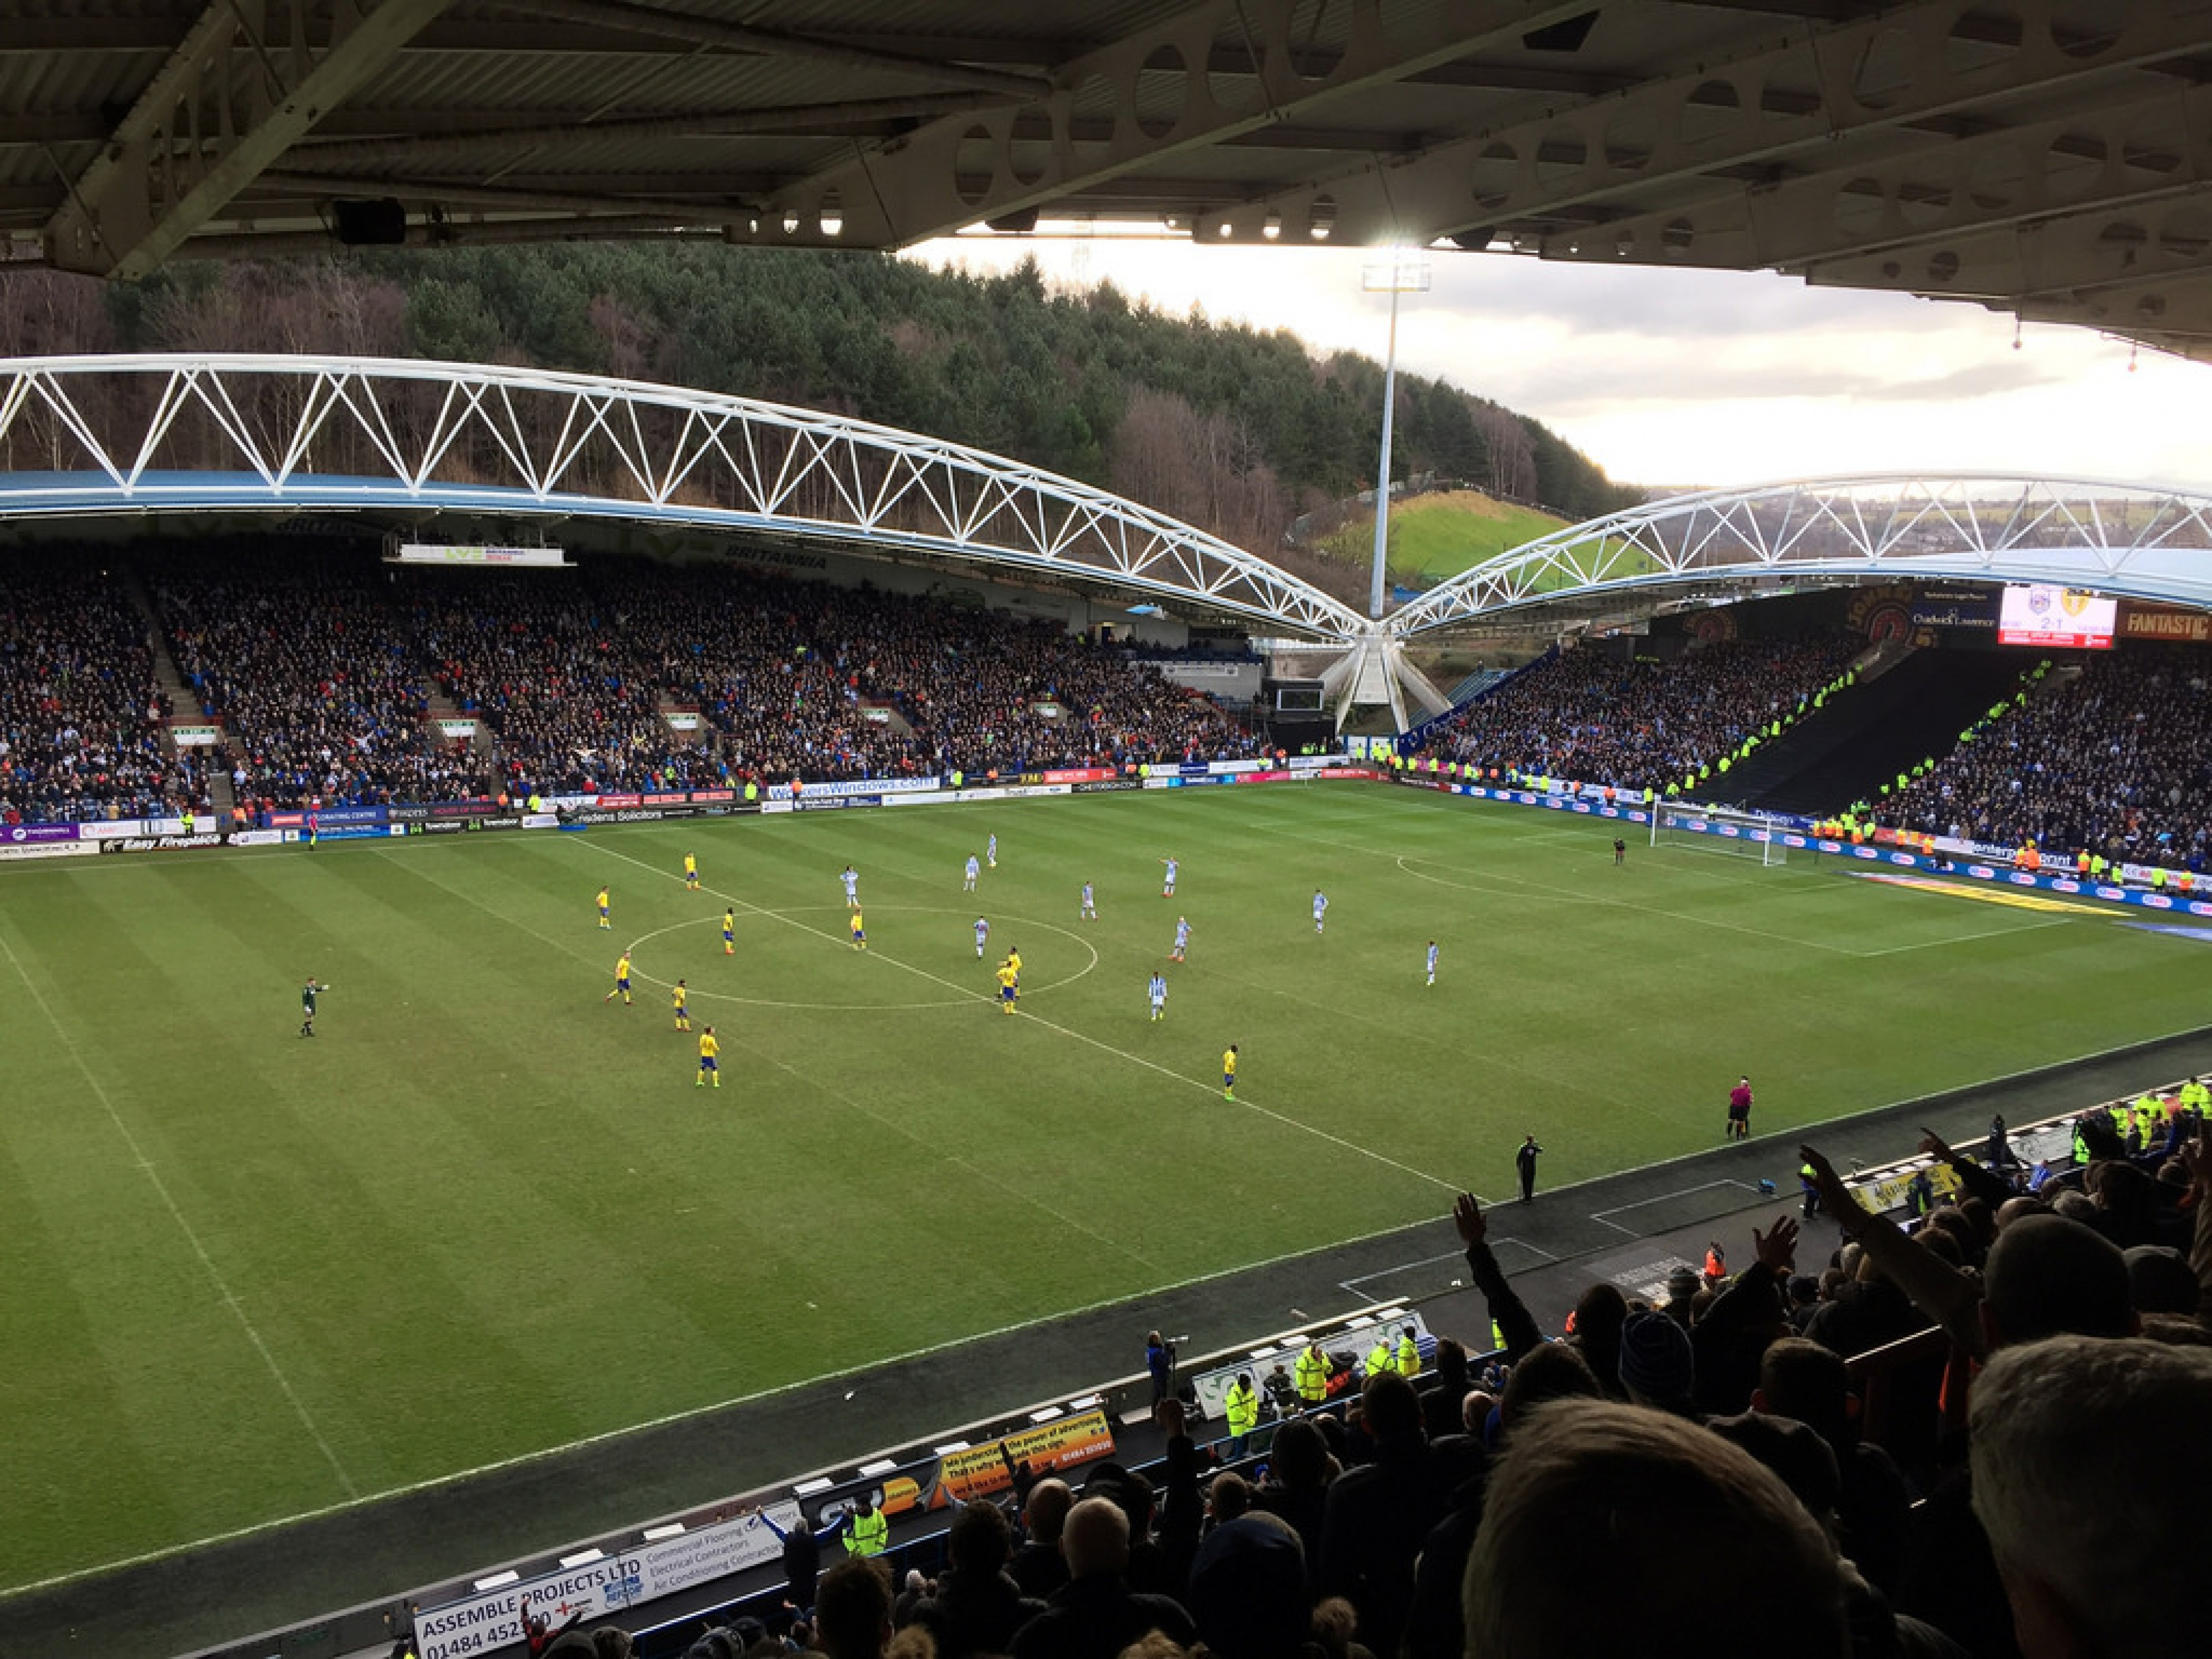 Aaron Mooy: Huddersfield are 'working as hard as we can' asthey search for first win of the season